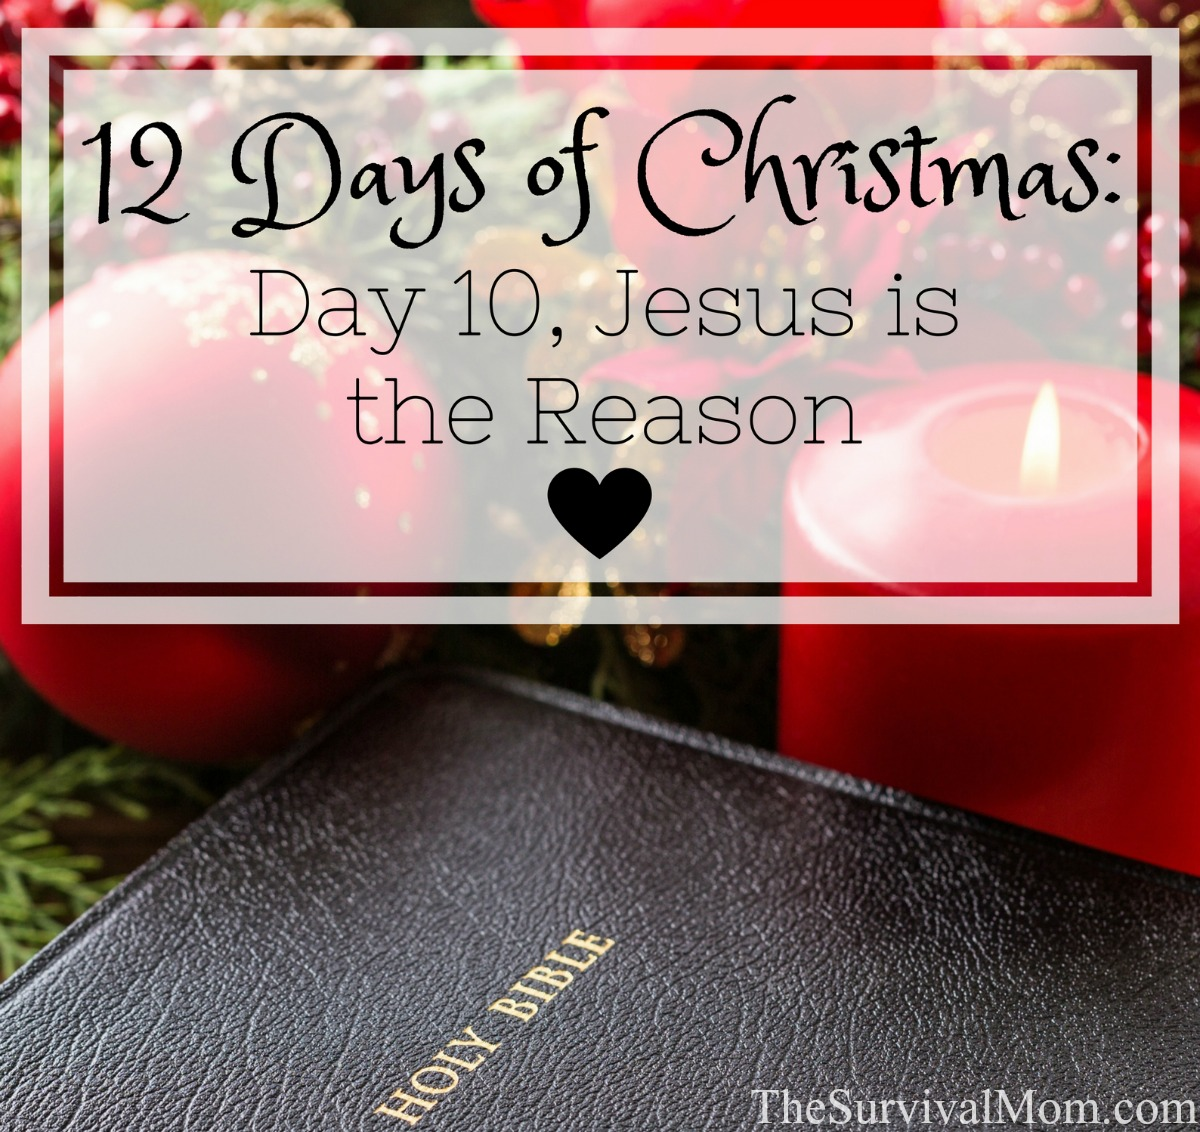 12 Days of Christmas Day 10 Jesus is the Reason via The Survival Mom